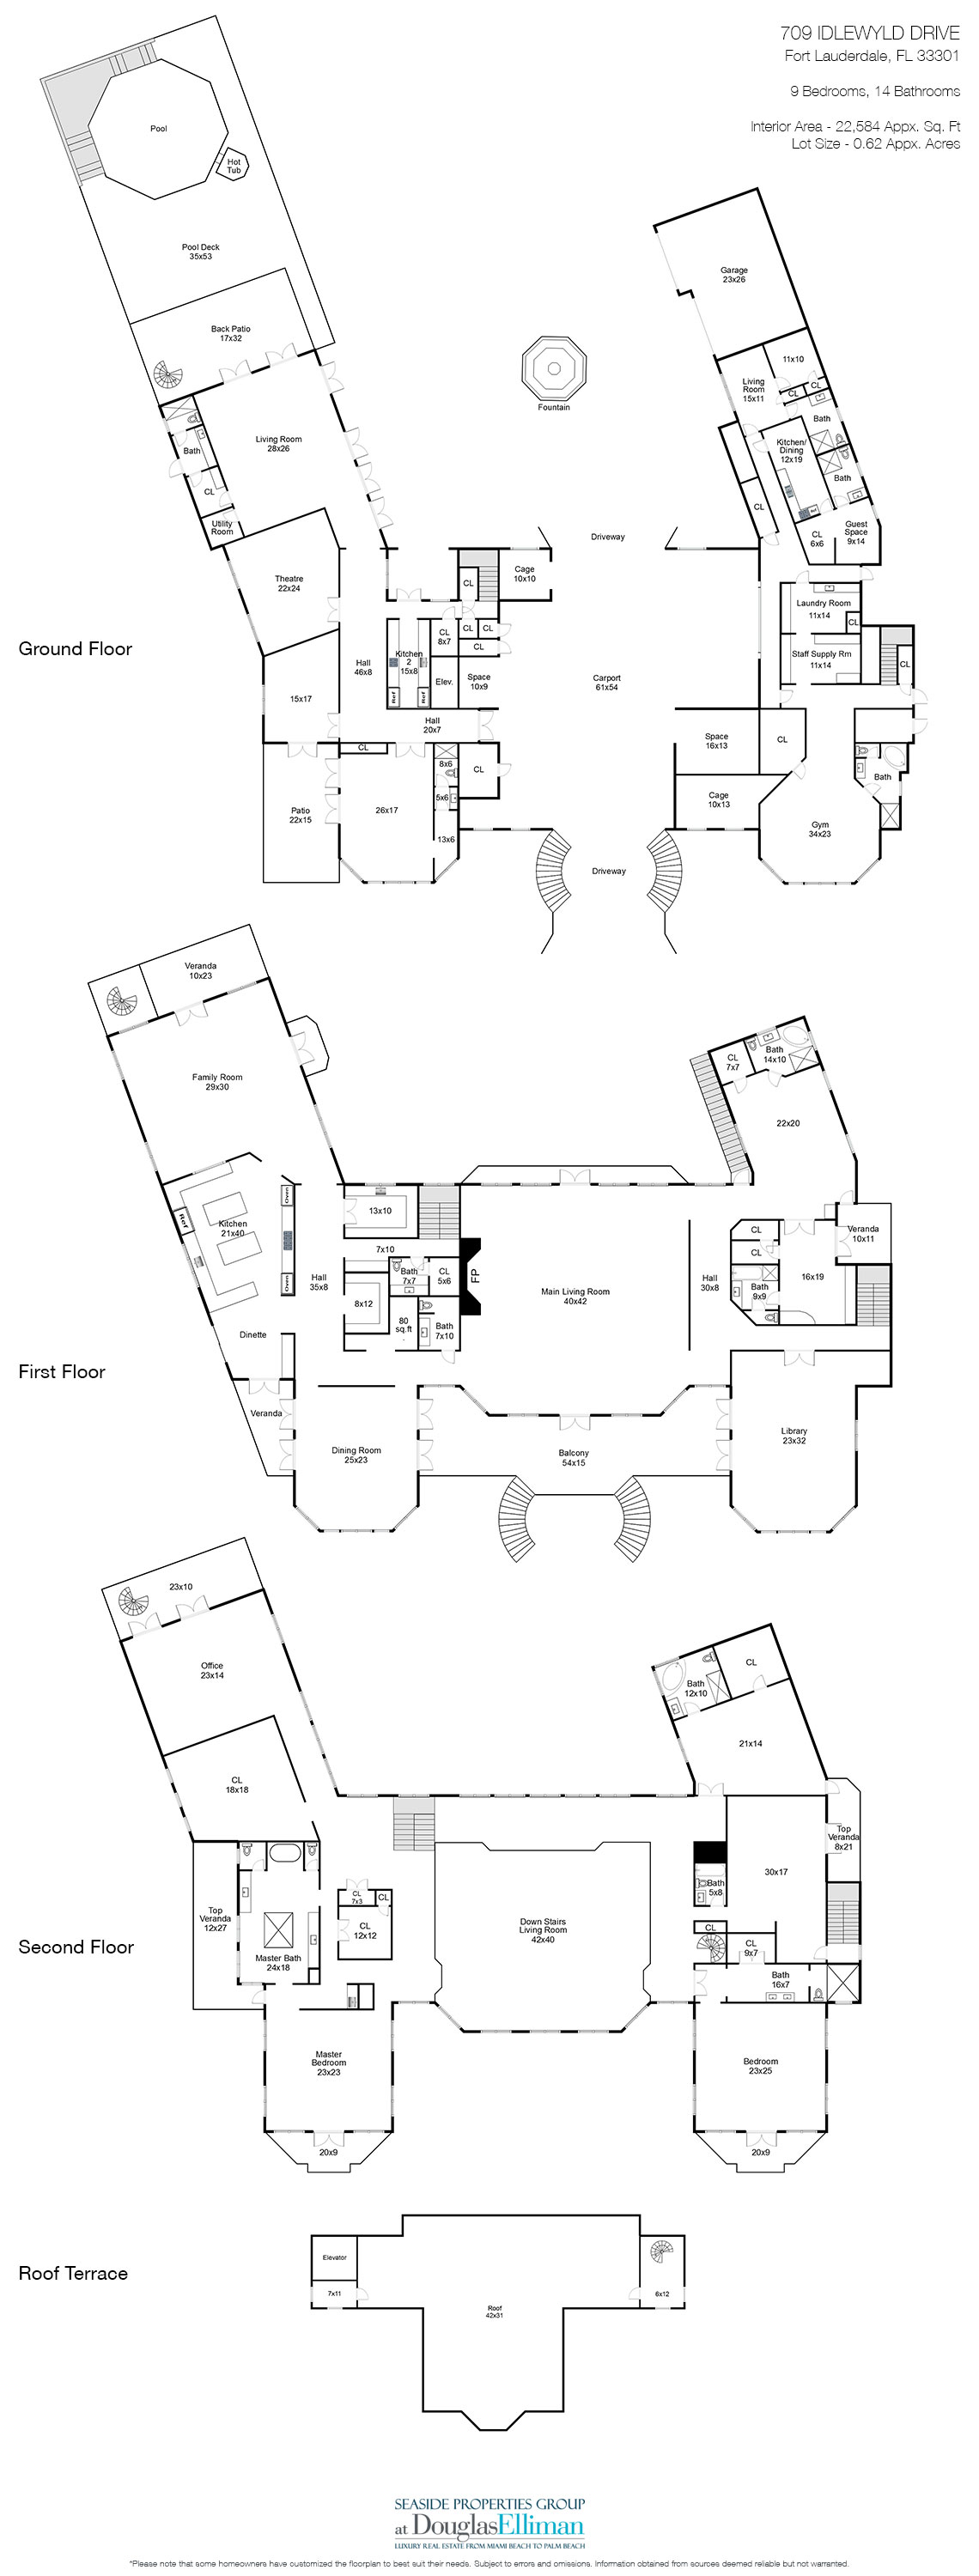 Floorplans for Luxury Estate Home, 709 Idlewyld Drive, Fort Lauderdale, Florida 33301